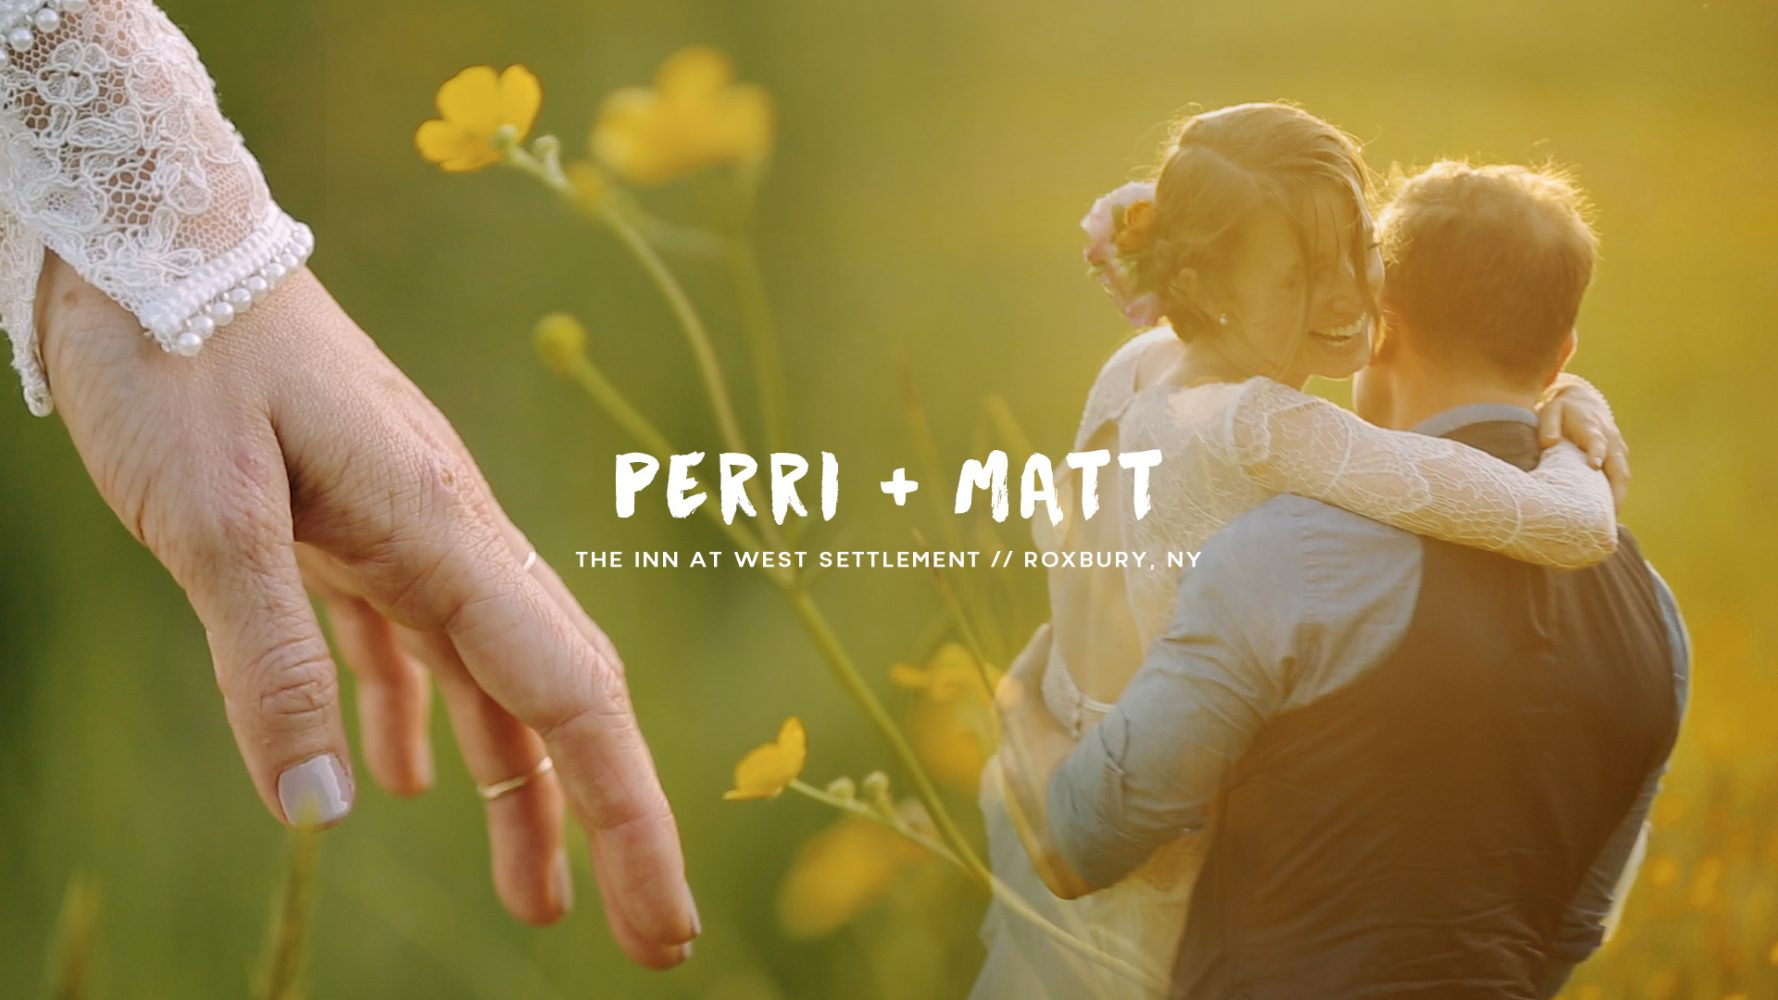 Perri + Matt | Roxbury, New York